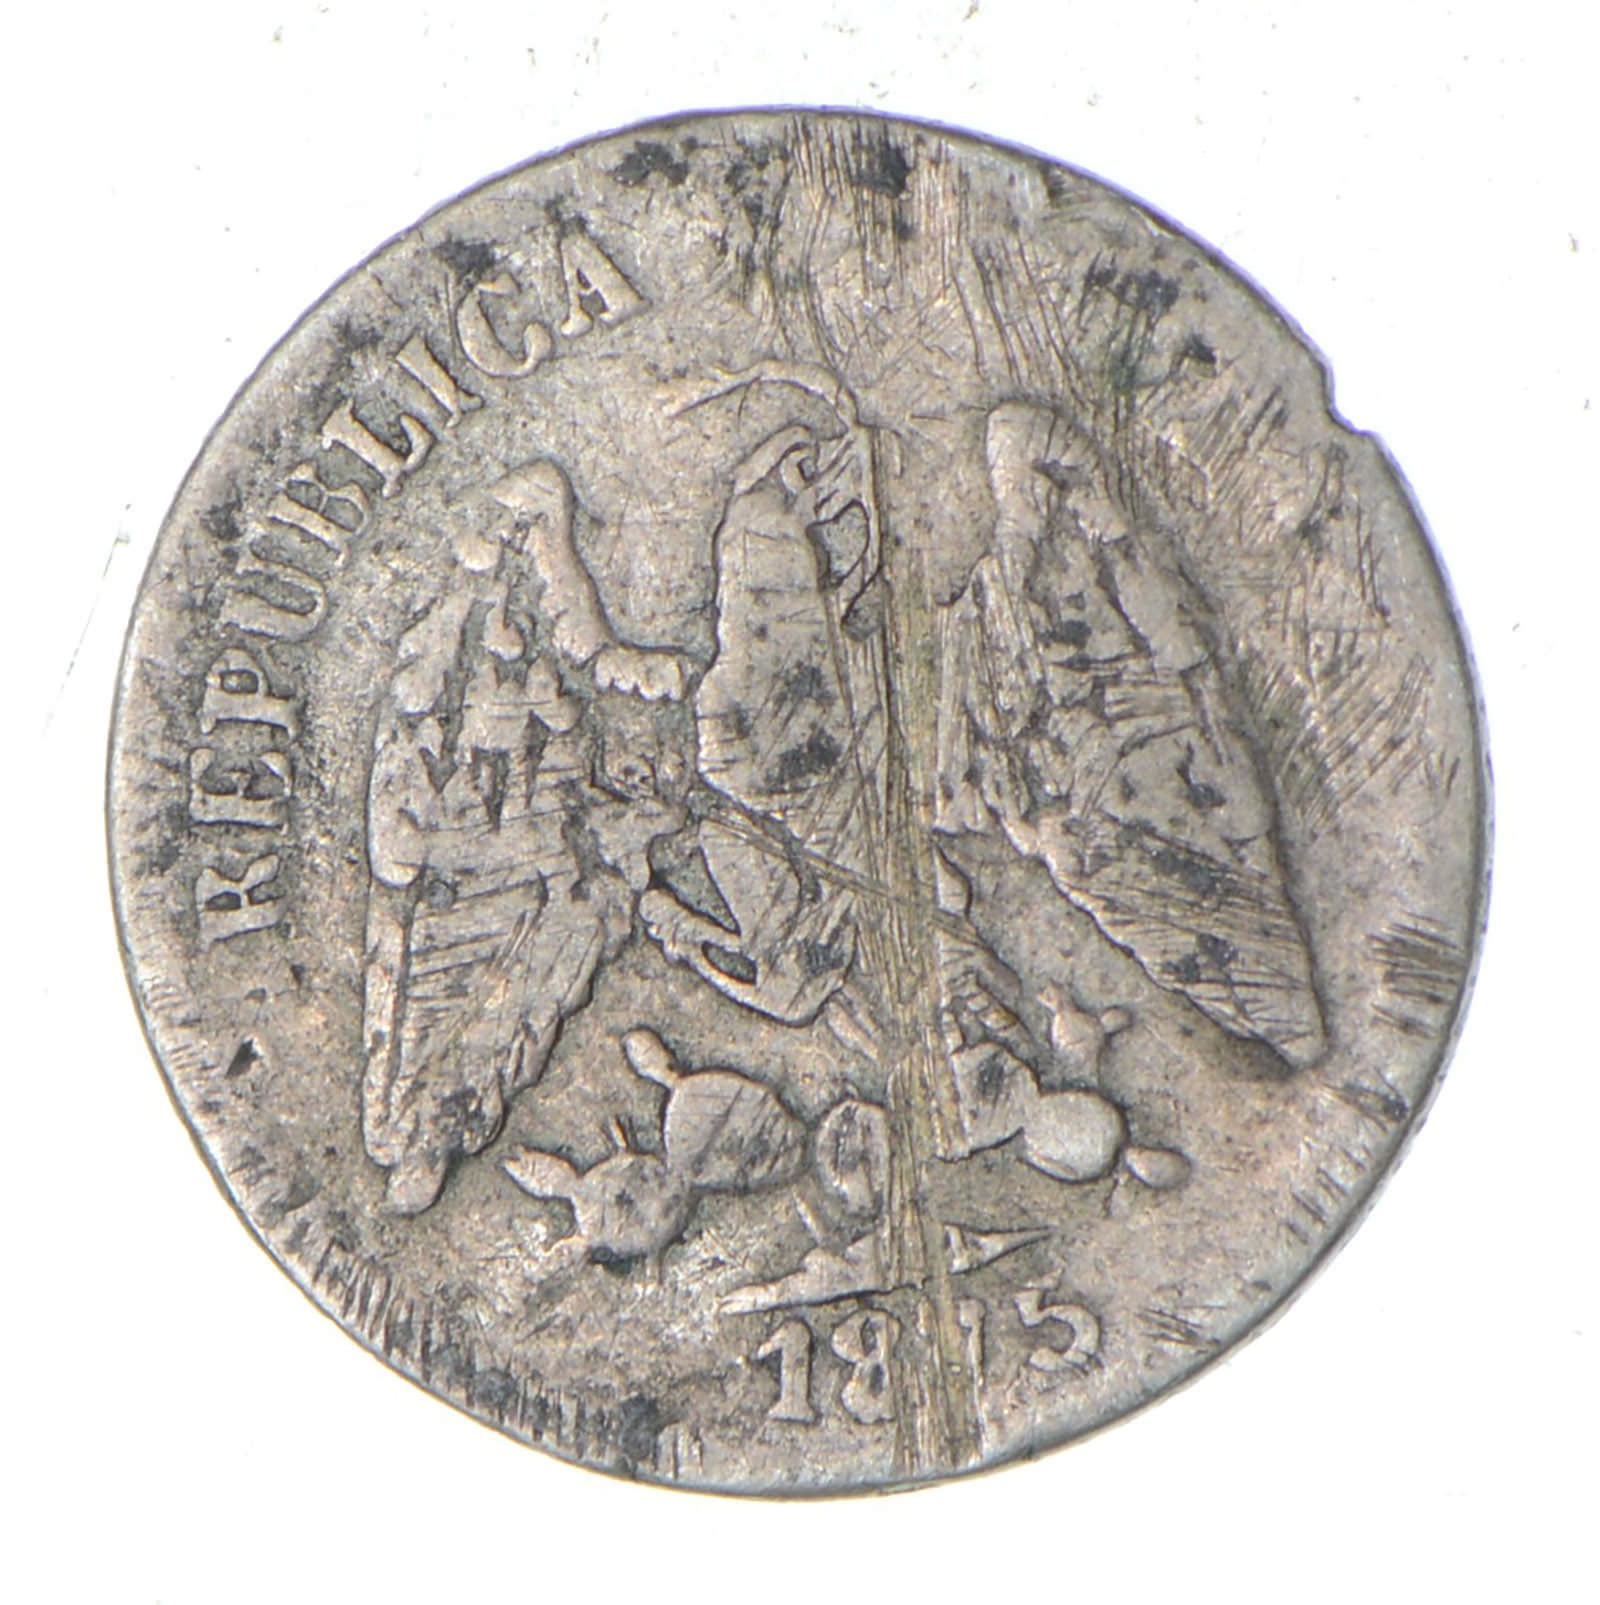 SILVER - Roughly the Size of a Nickel - 1875 Mexico 5